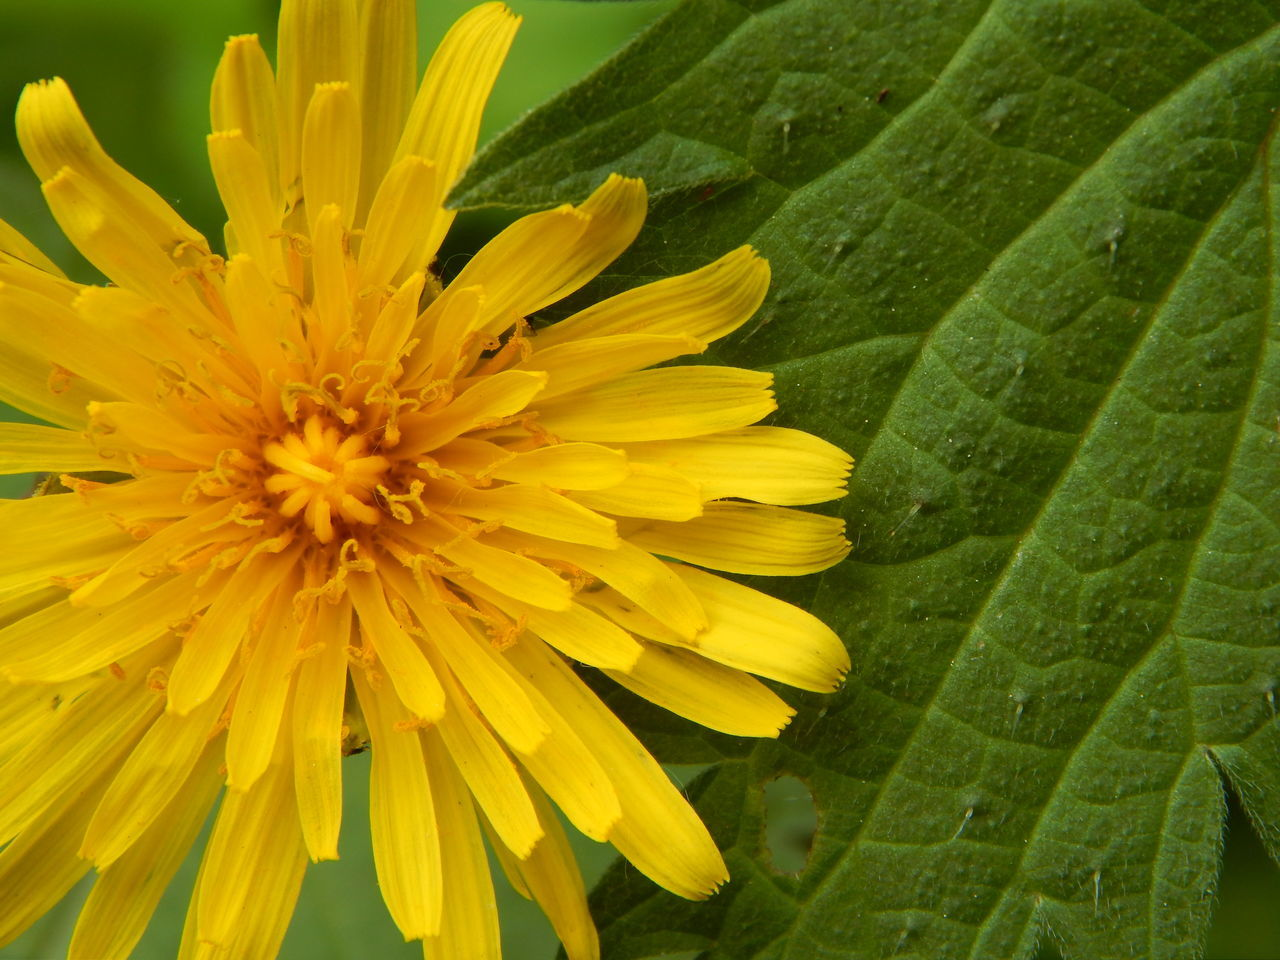 dandelion Beauty In Nature Blooming Close-up Dandelion Dandelion Collection Dandelion In Spring Dandelions Flower Flower Head Fragility Green Leaf Green Leaves Löwenzahn Nature Nature Nature Photography Nature_collection Nature_perfection Naturephotography No People Petal Tranquil Scene Tranquility Yellow Yellow Flower